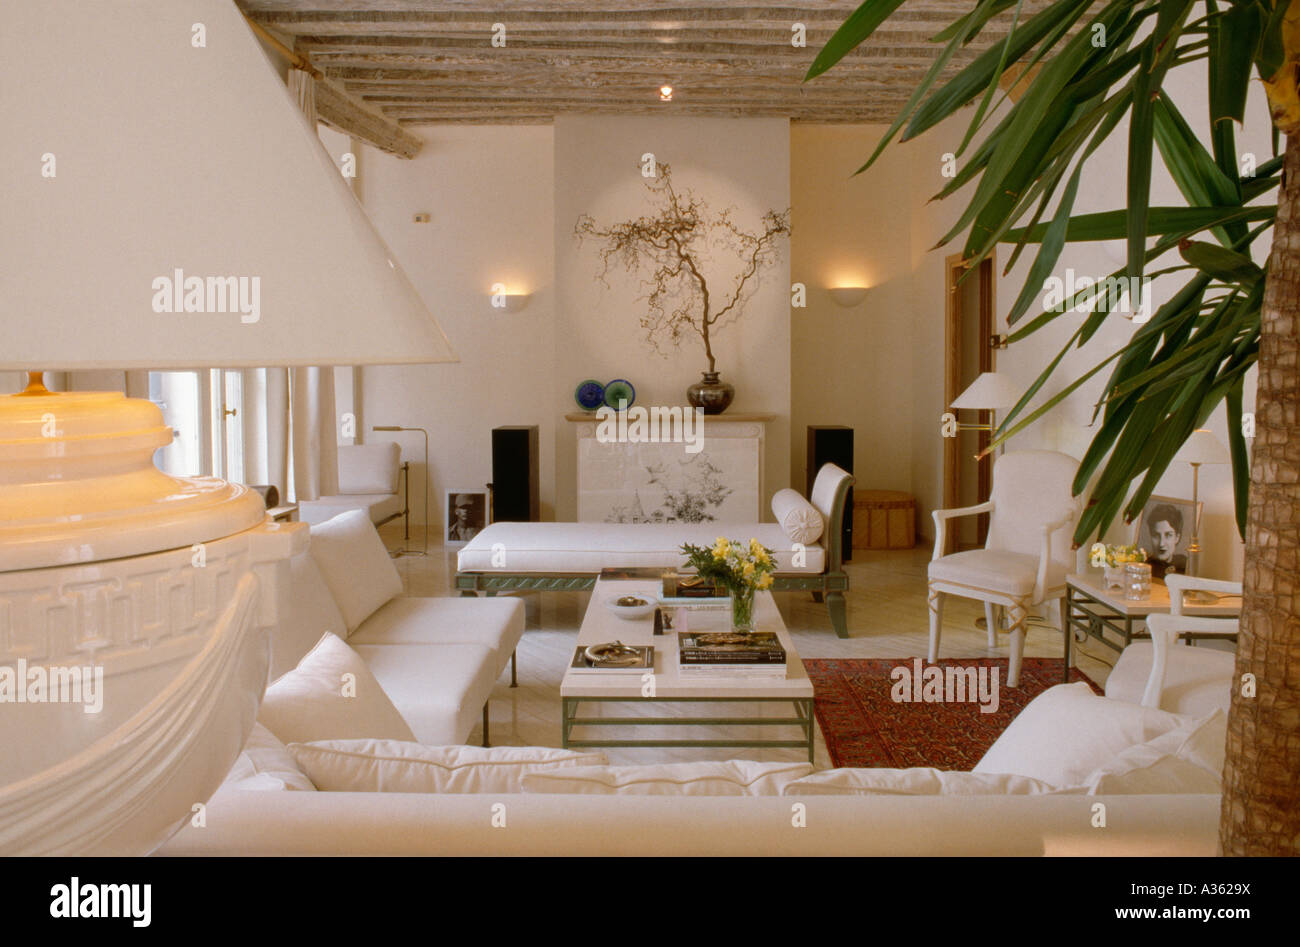 brennenden lampen und wei e m bel im modernen wei en gartenhaus stockfoto bild 10682005 alamy. Black Bedroom Furniture Sets. Home Design Ideas